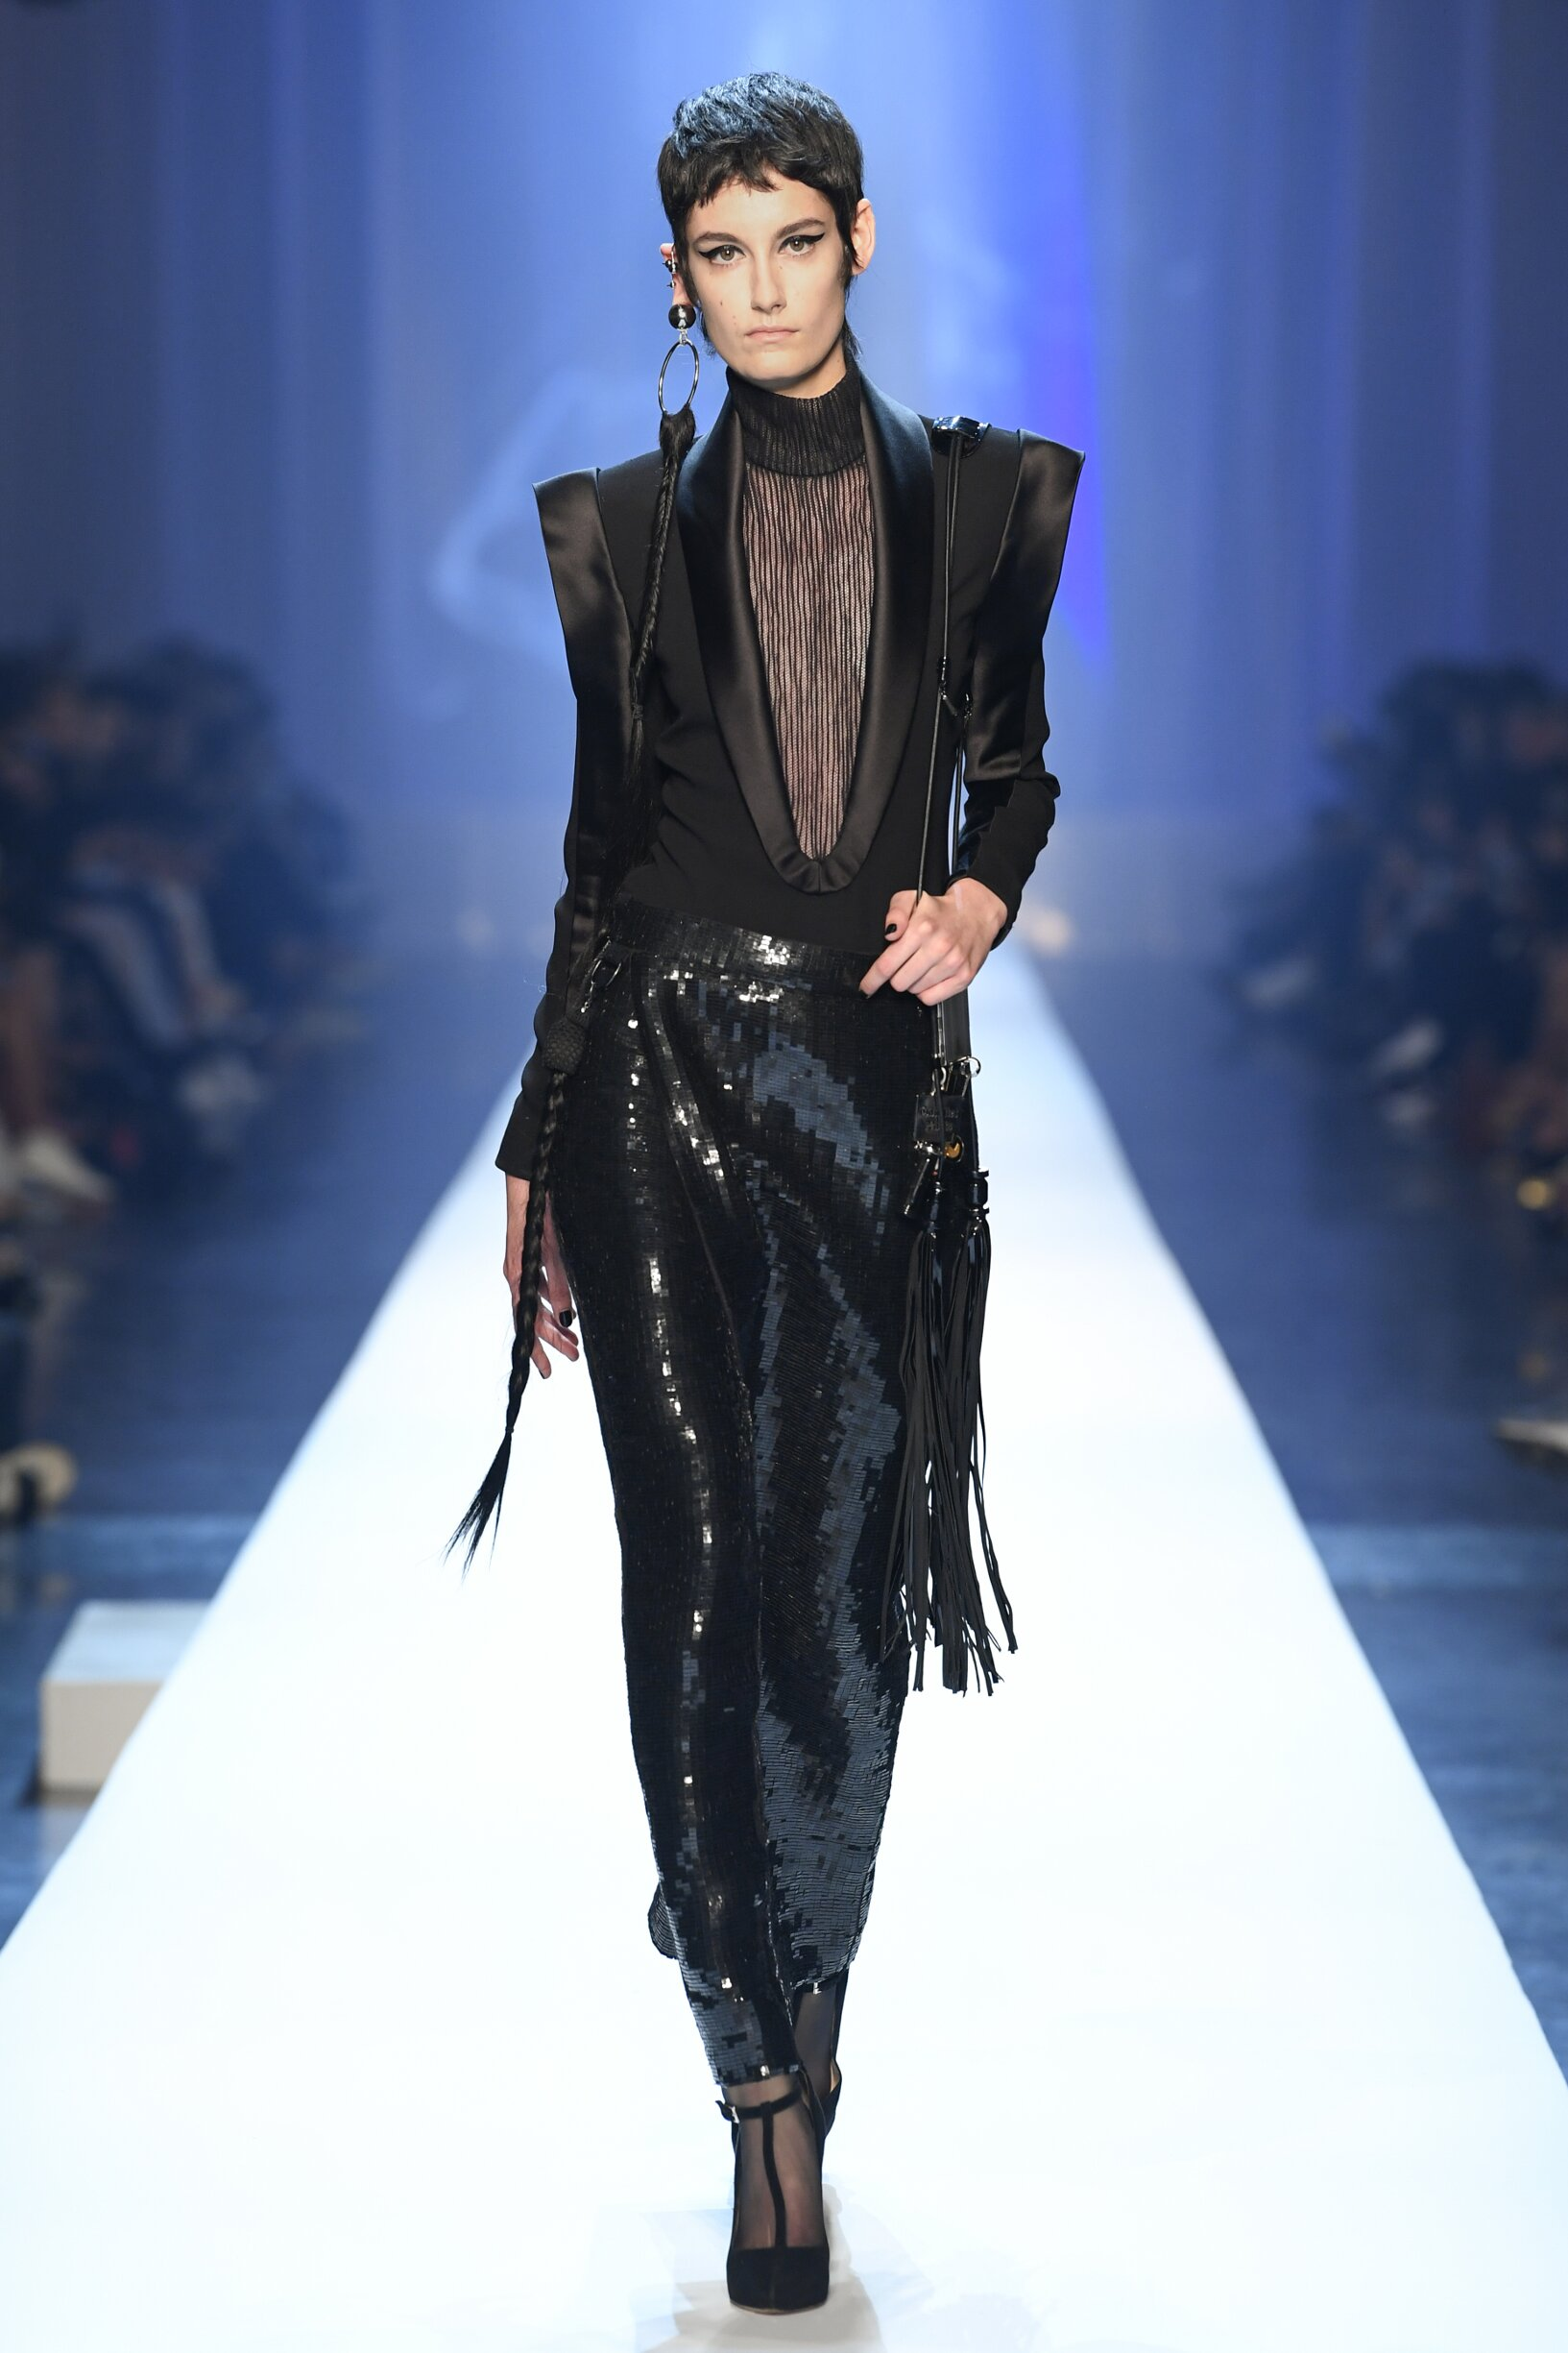 Jean-Paul Gaultier Haute Couture Womenswear Collection Trends